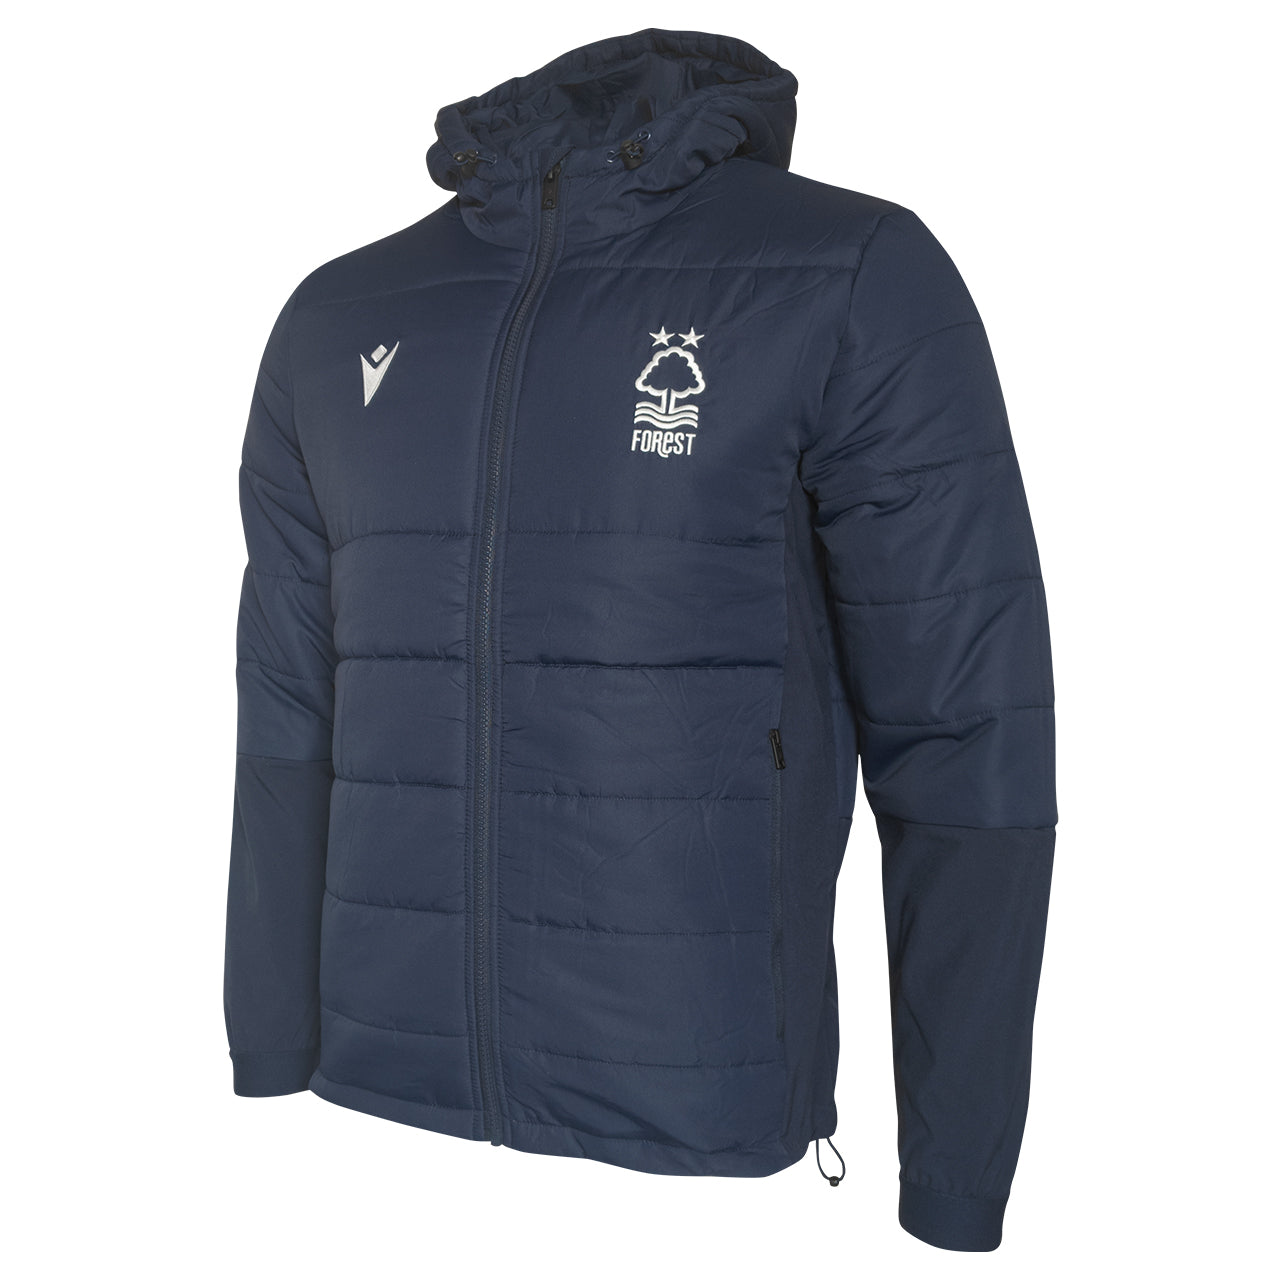 NFFC Mens Player Bomber Jacket 2020/21